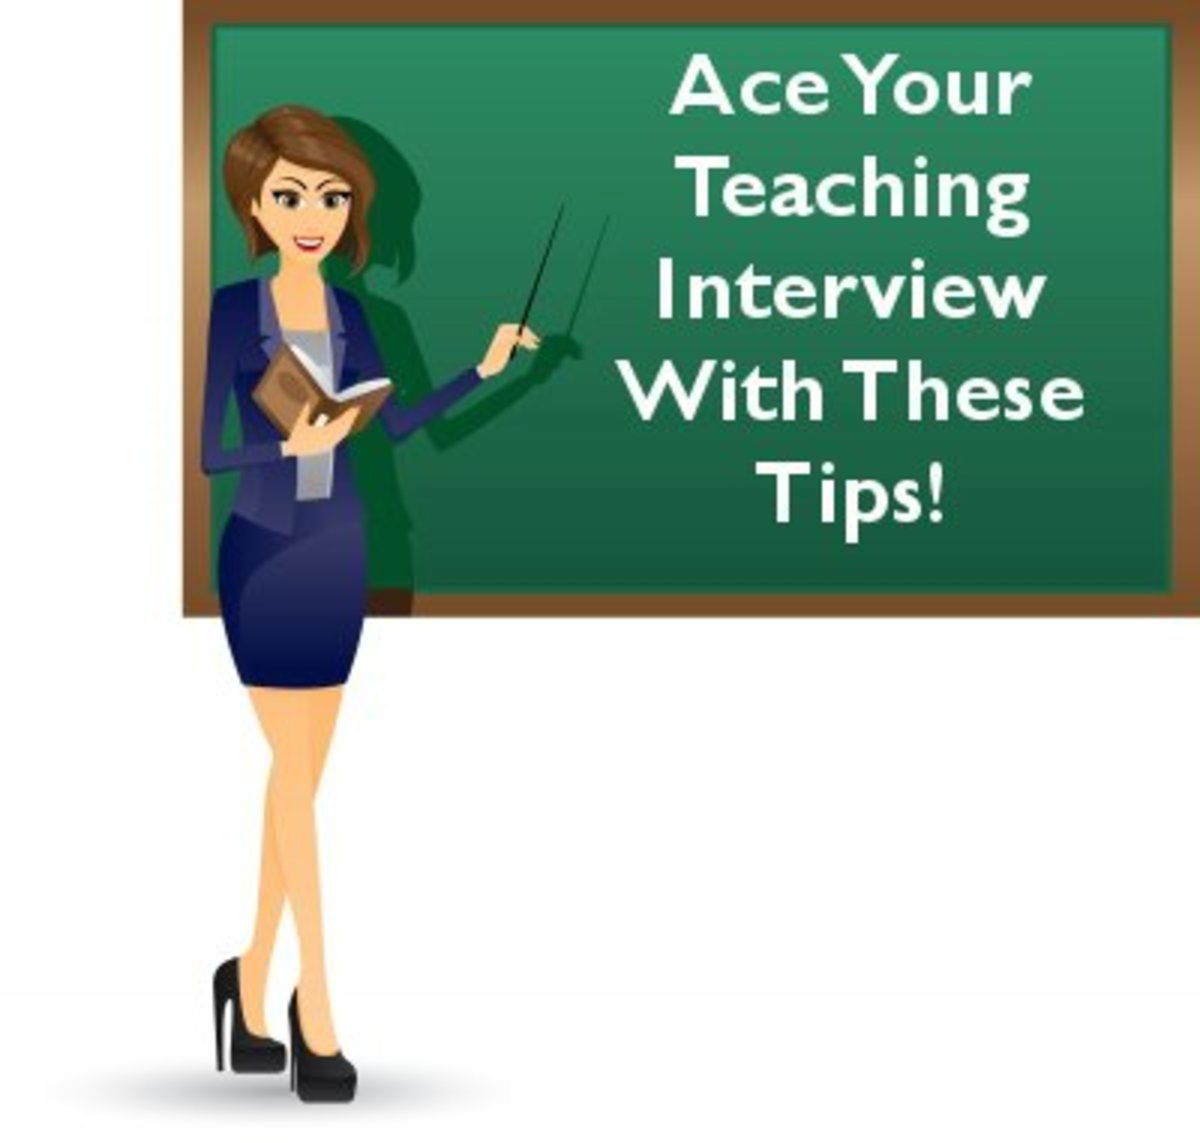 Prepare for a Teaching Interview - Land That Teaching Job!